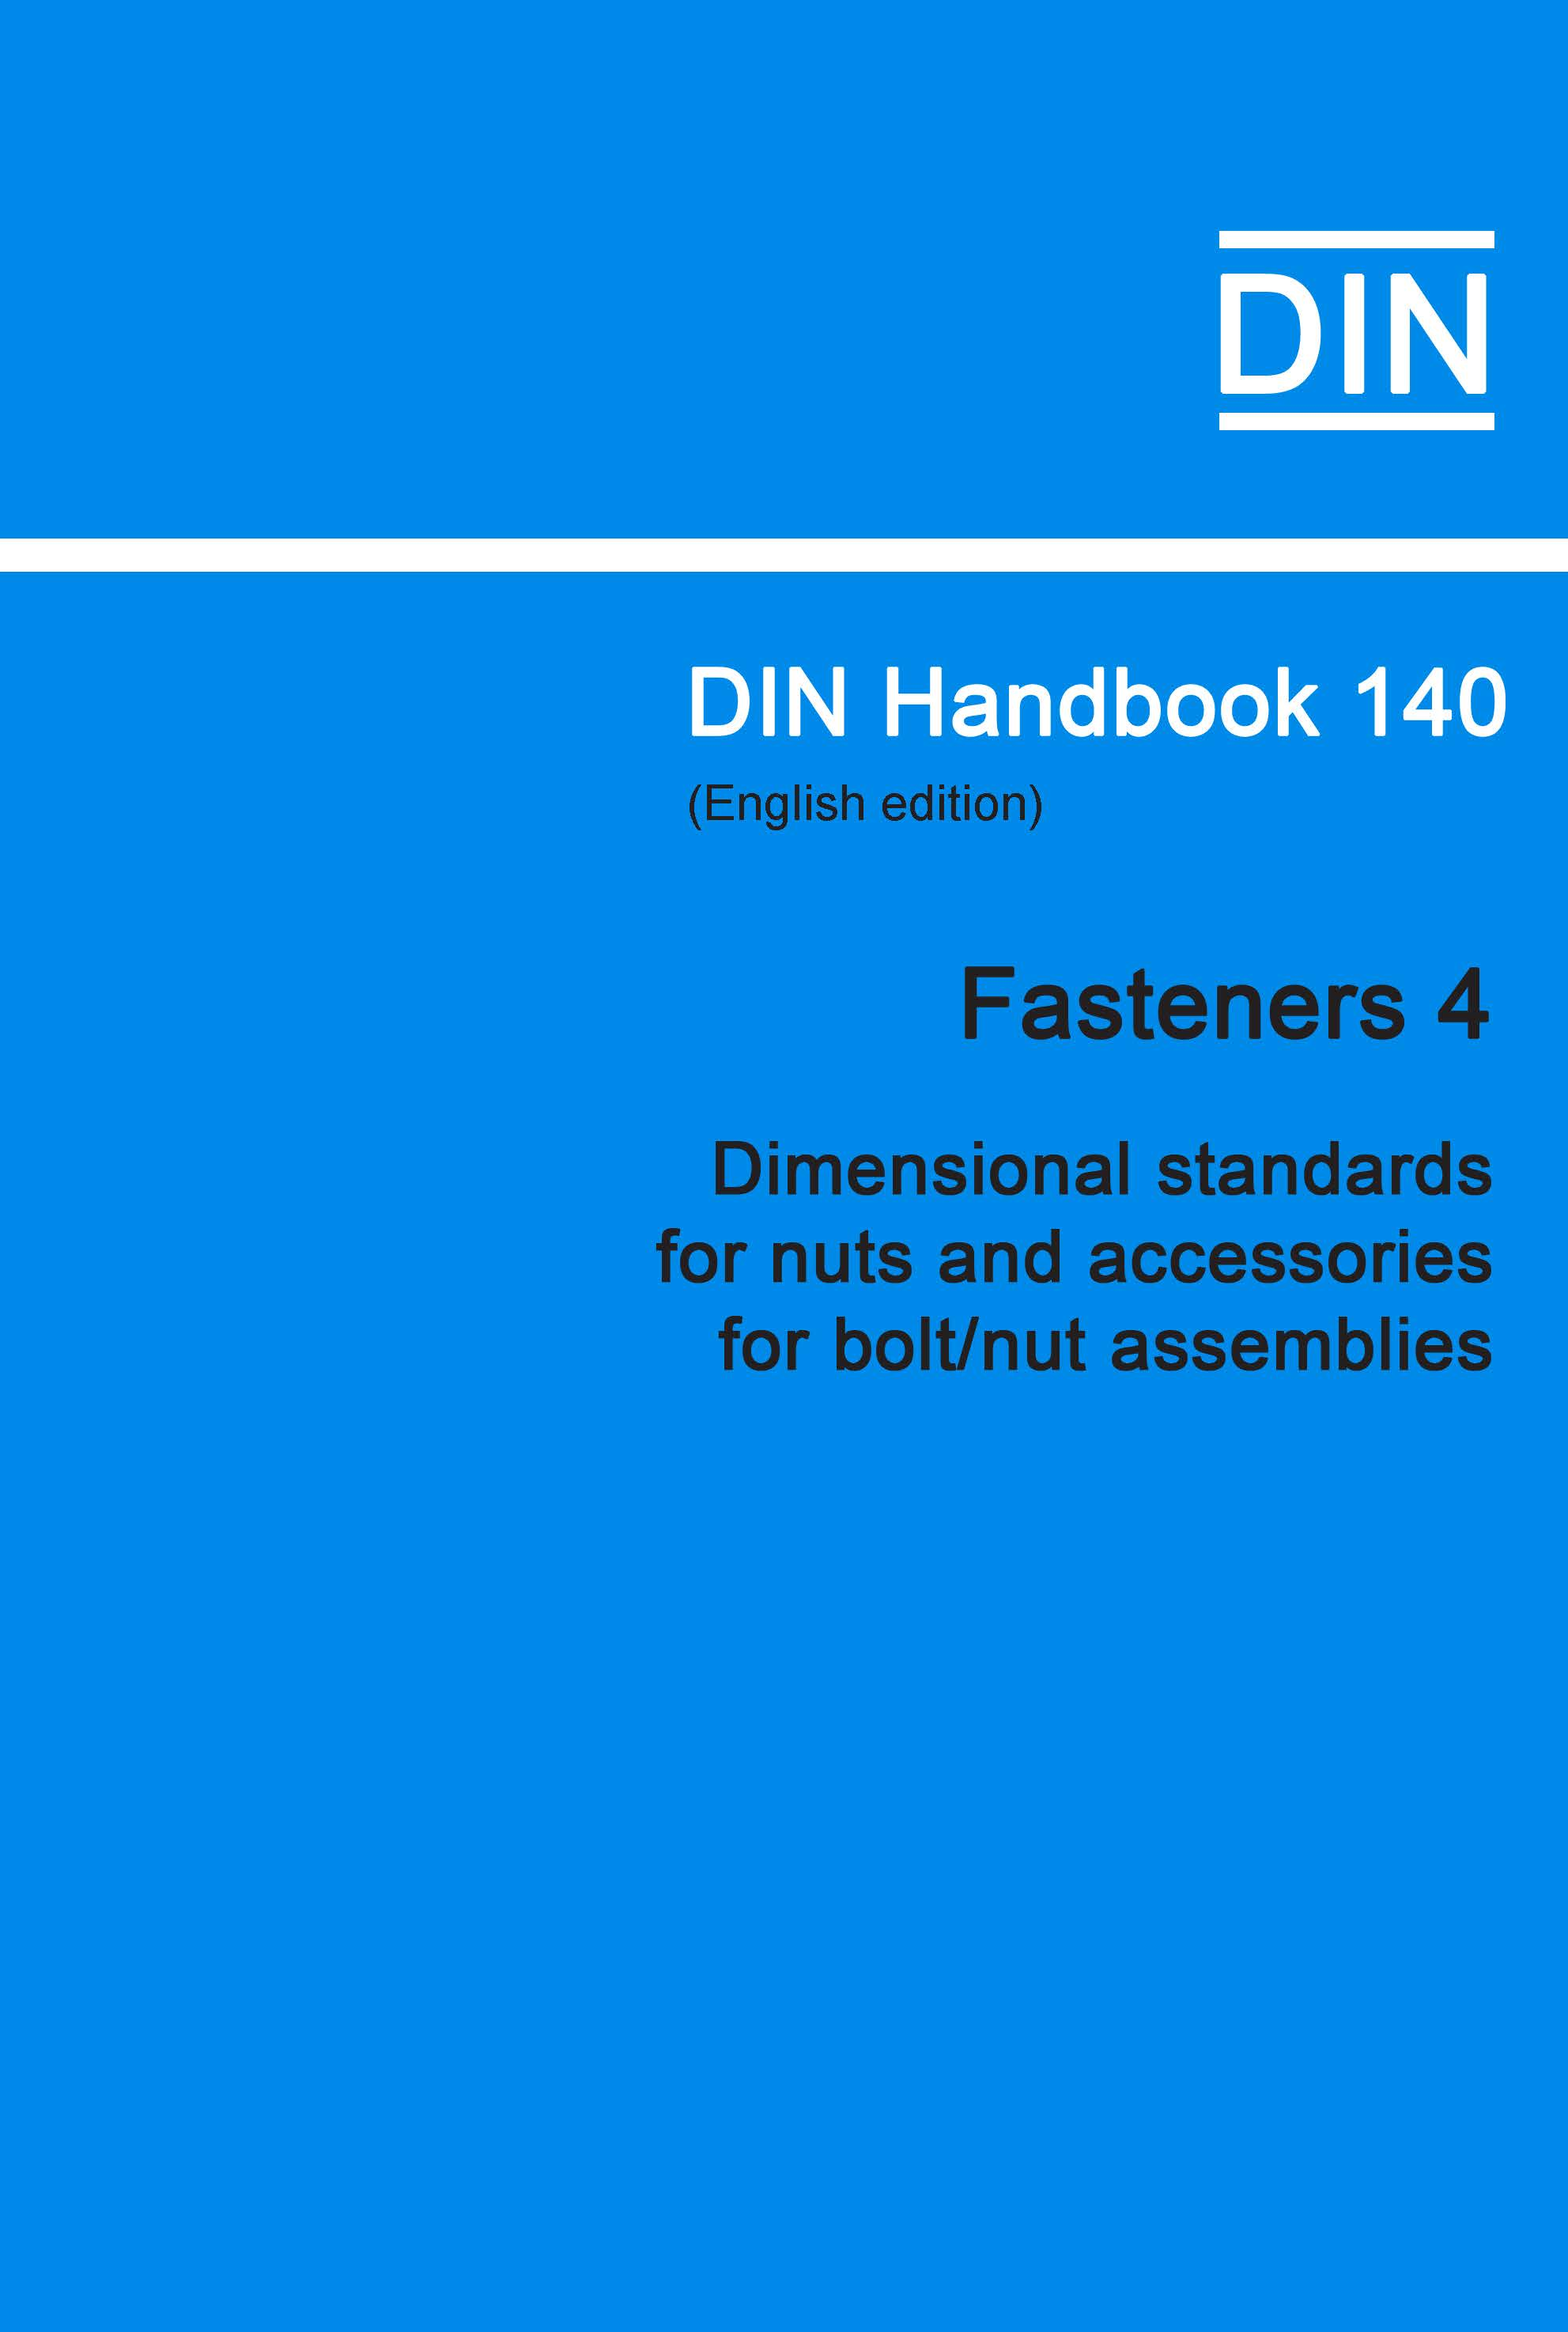 (DIN Handbook  140 Fasteners 4 (Dimensional Standards For Nuts And Accessories For Bolt/nut Assemblies